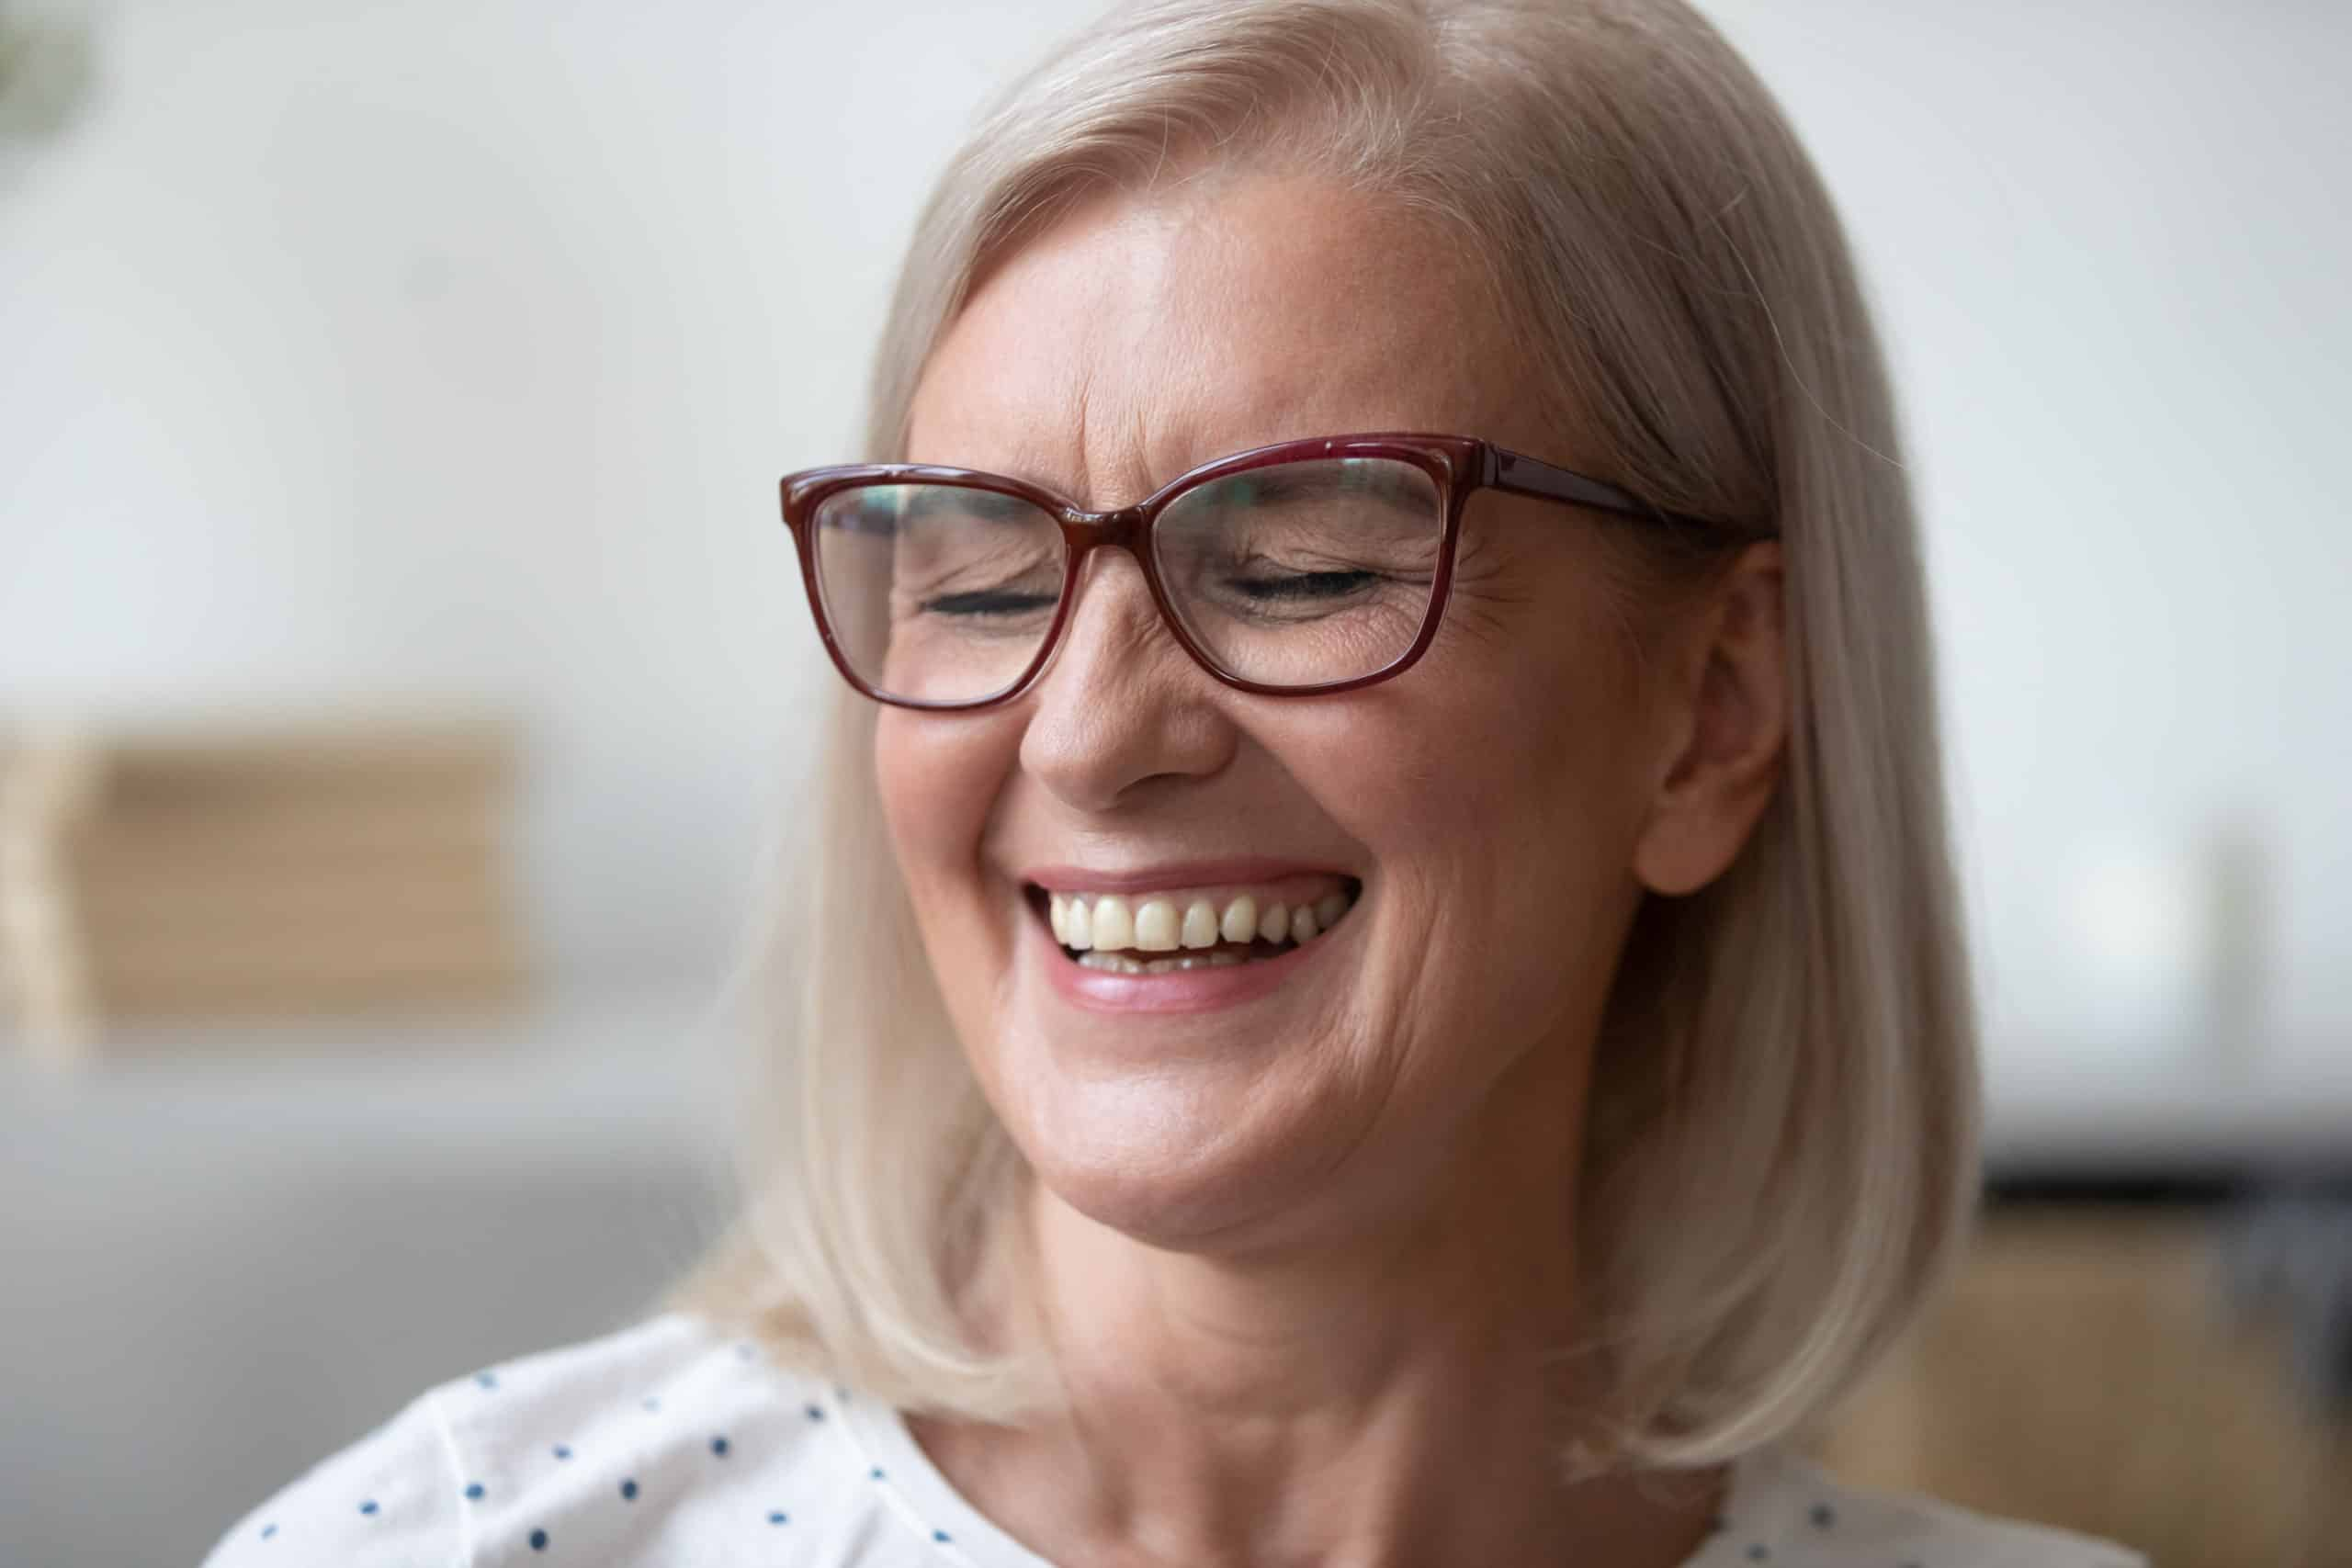 Close up of overjoyed lady in glasses smile showing white healthy teeth